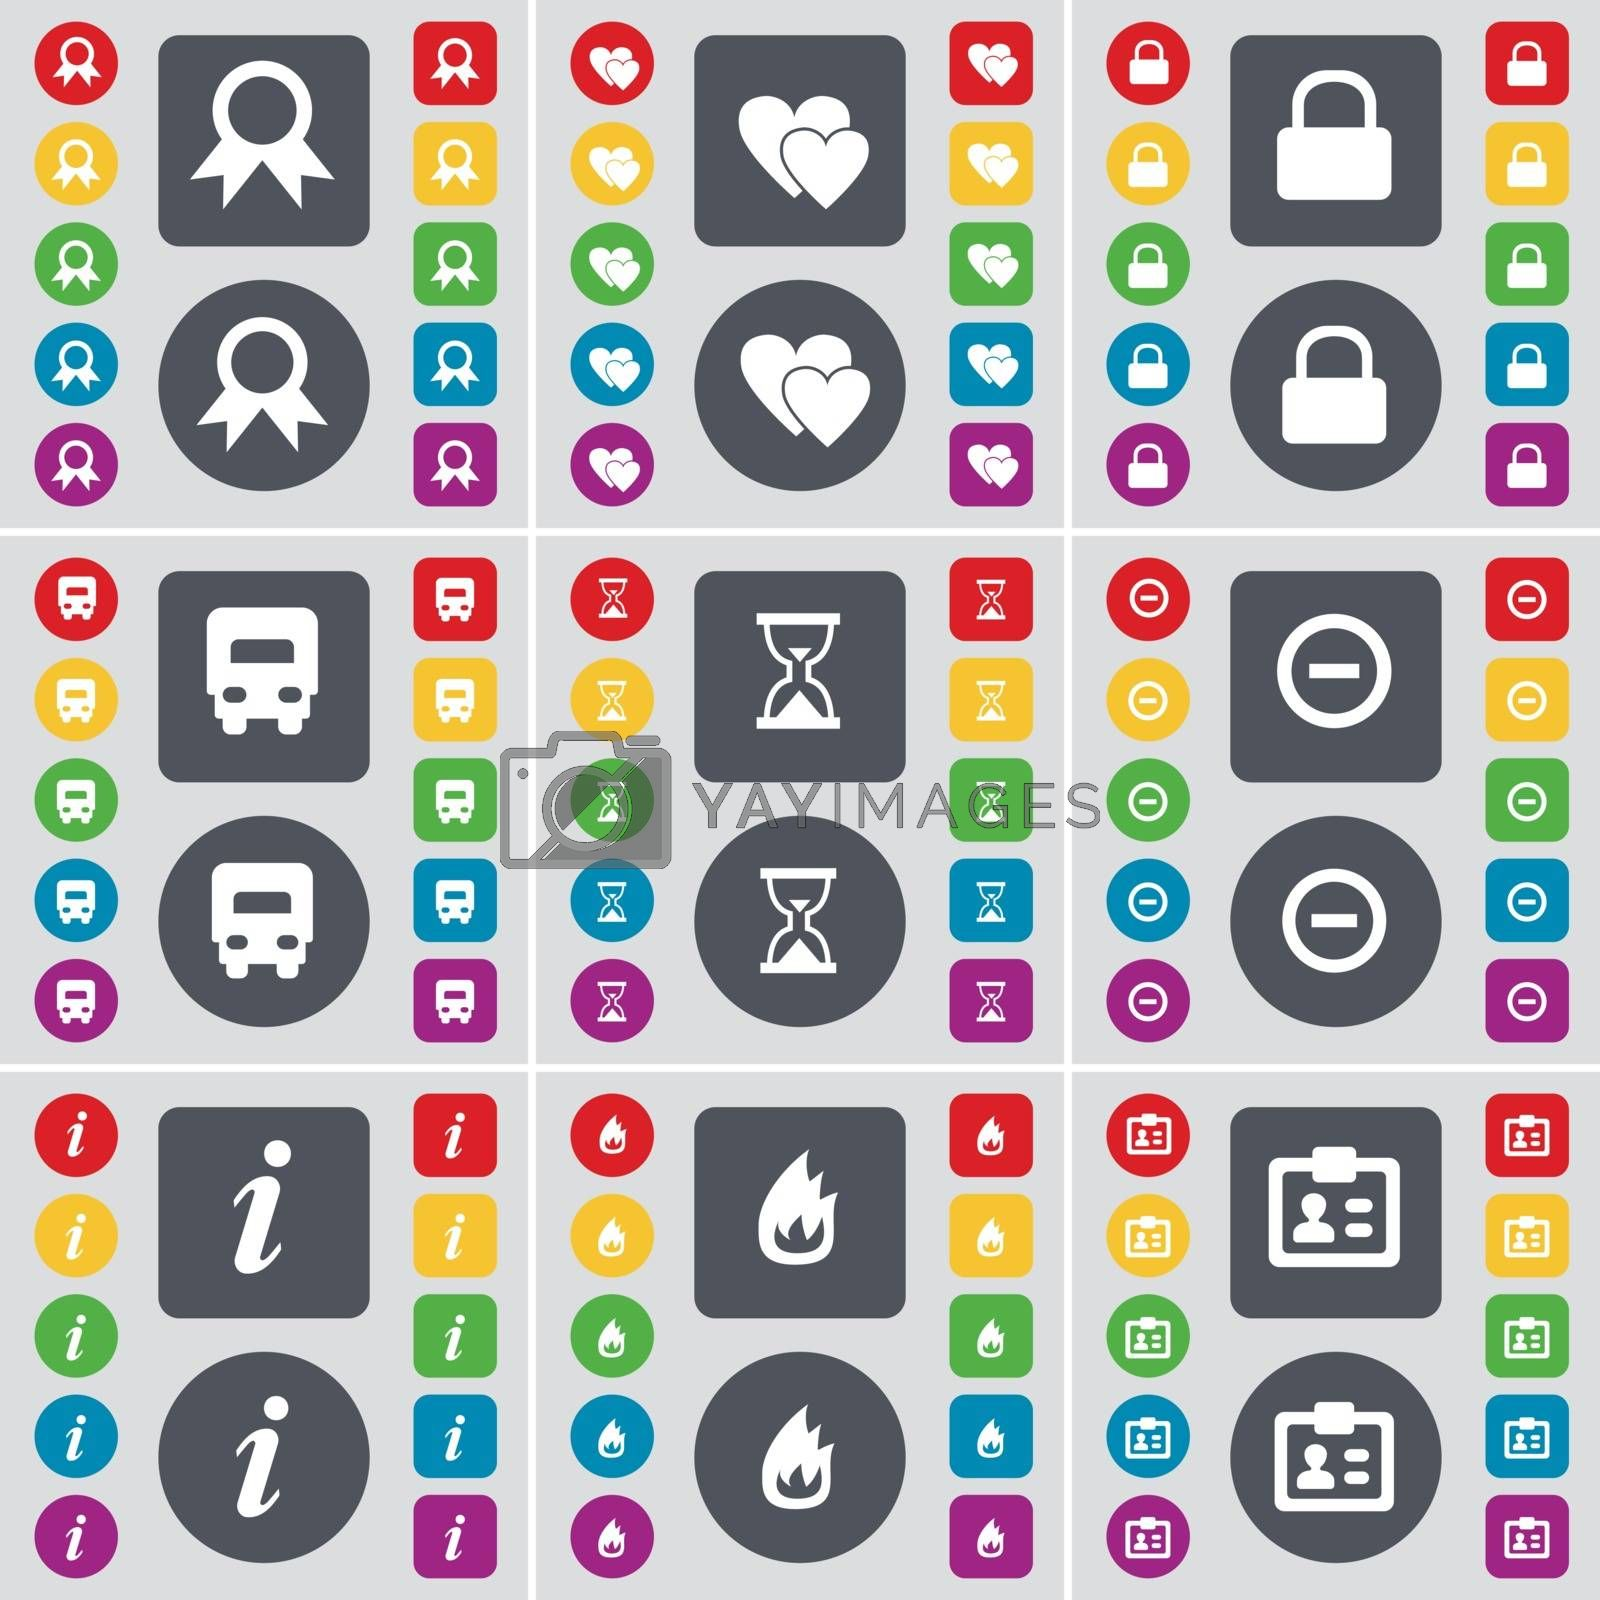 Royalty free image of Medal, Heart, Lock, Car, Hourglass, Minus, Information, Fire, Contact icon symbol. A large set of flat, colored buttons for your design. Vector by serhii_lohvyniuk